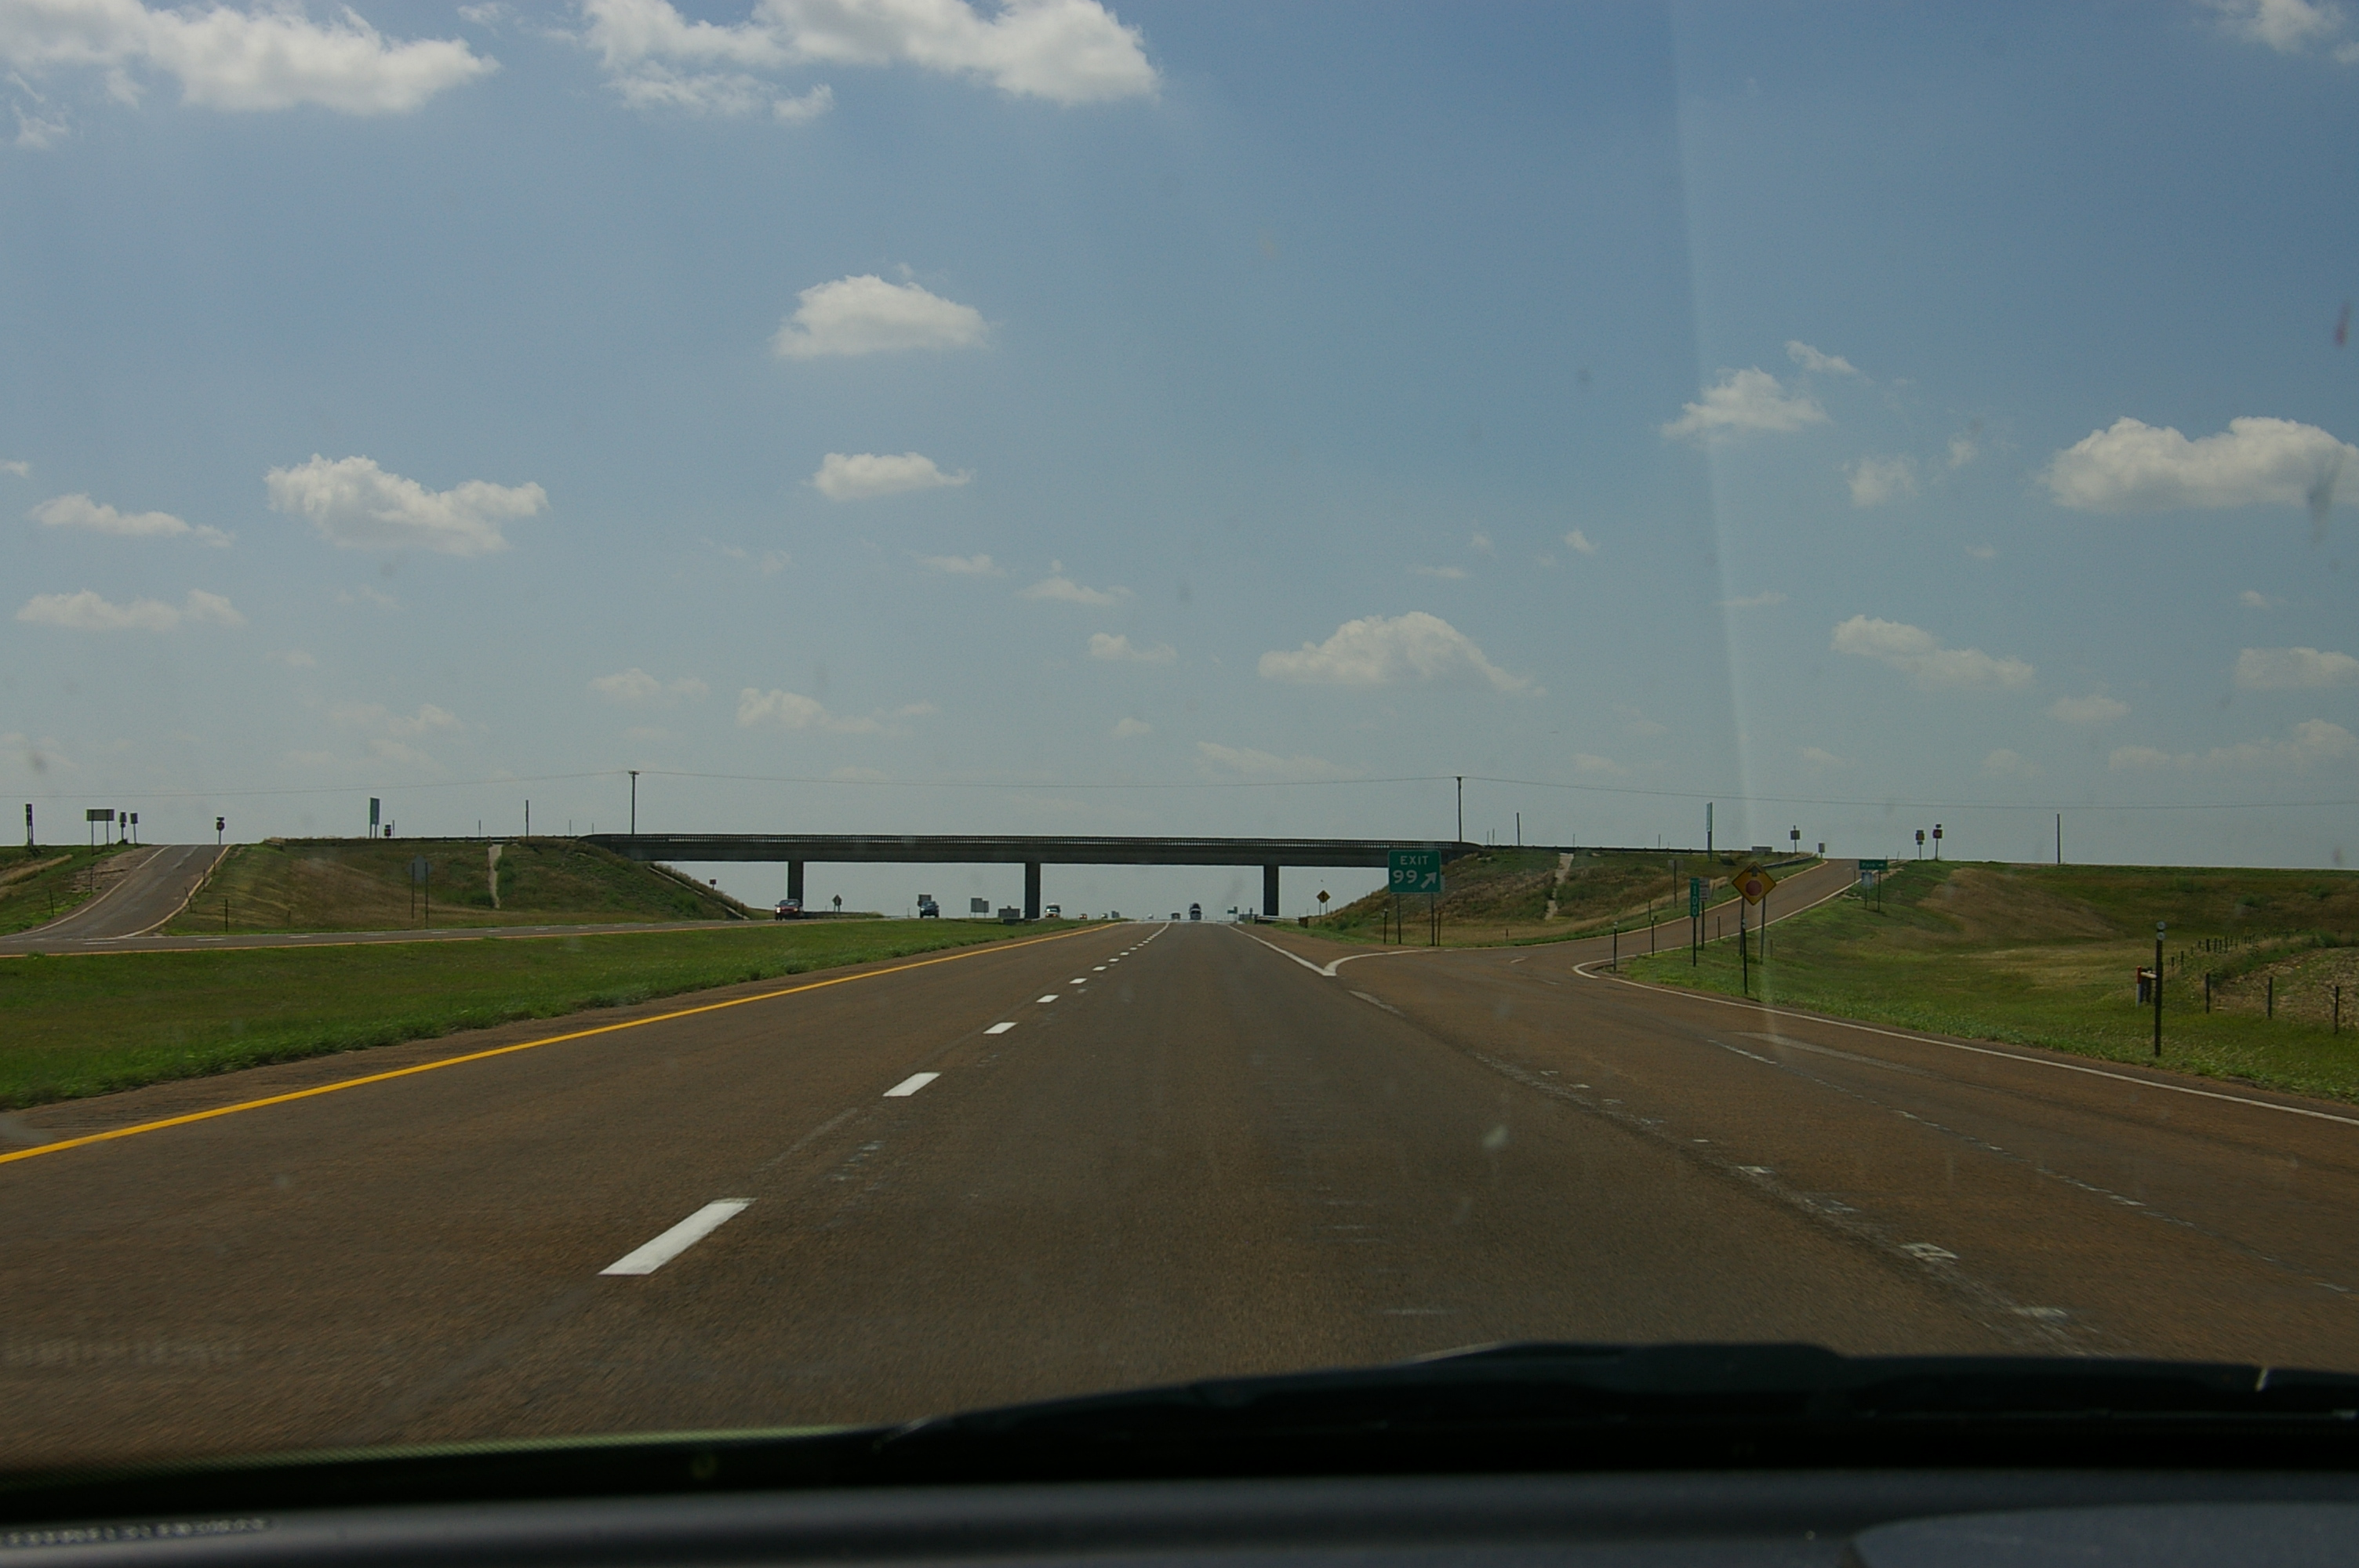 Driver's view of road overpass crossing a stretch of rural interstate highway